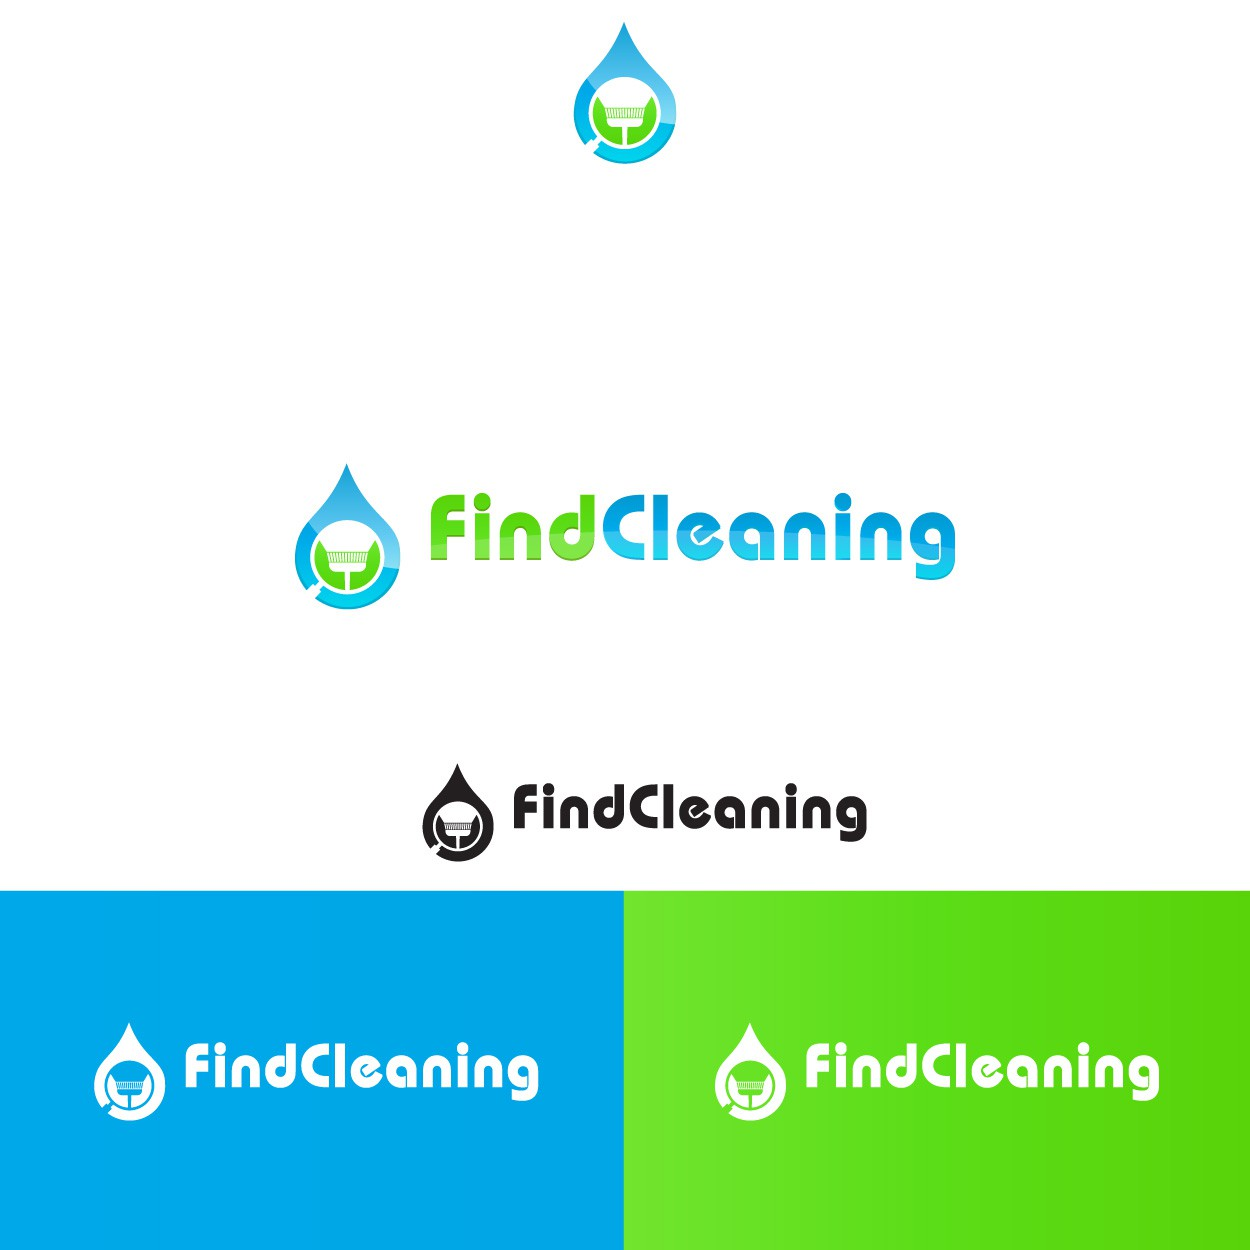 Find Cleaning needs a new logo